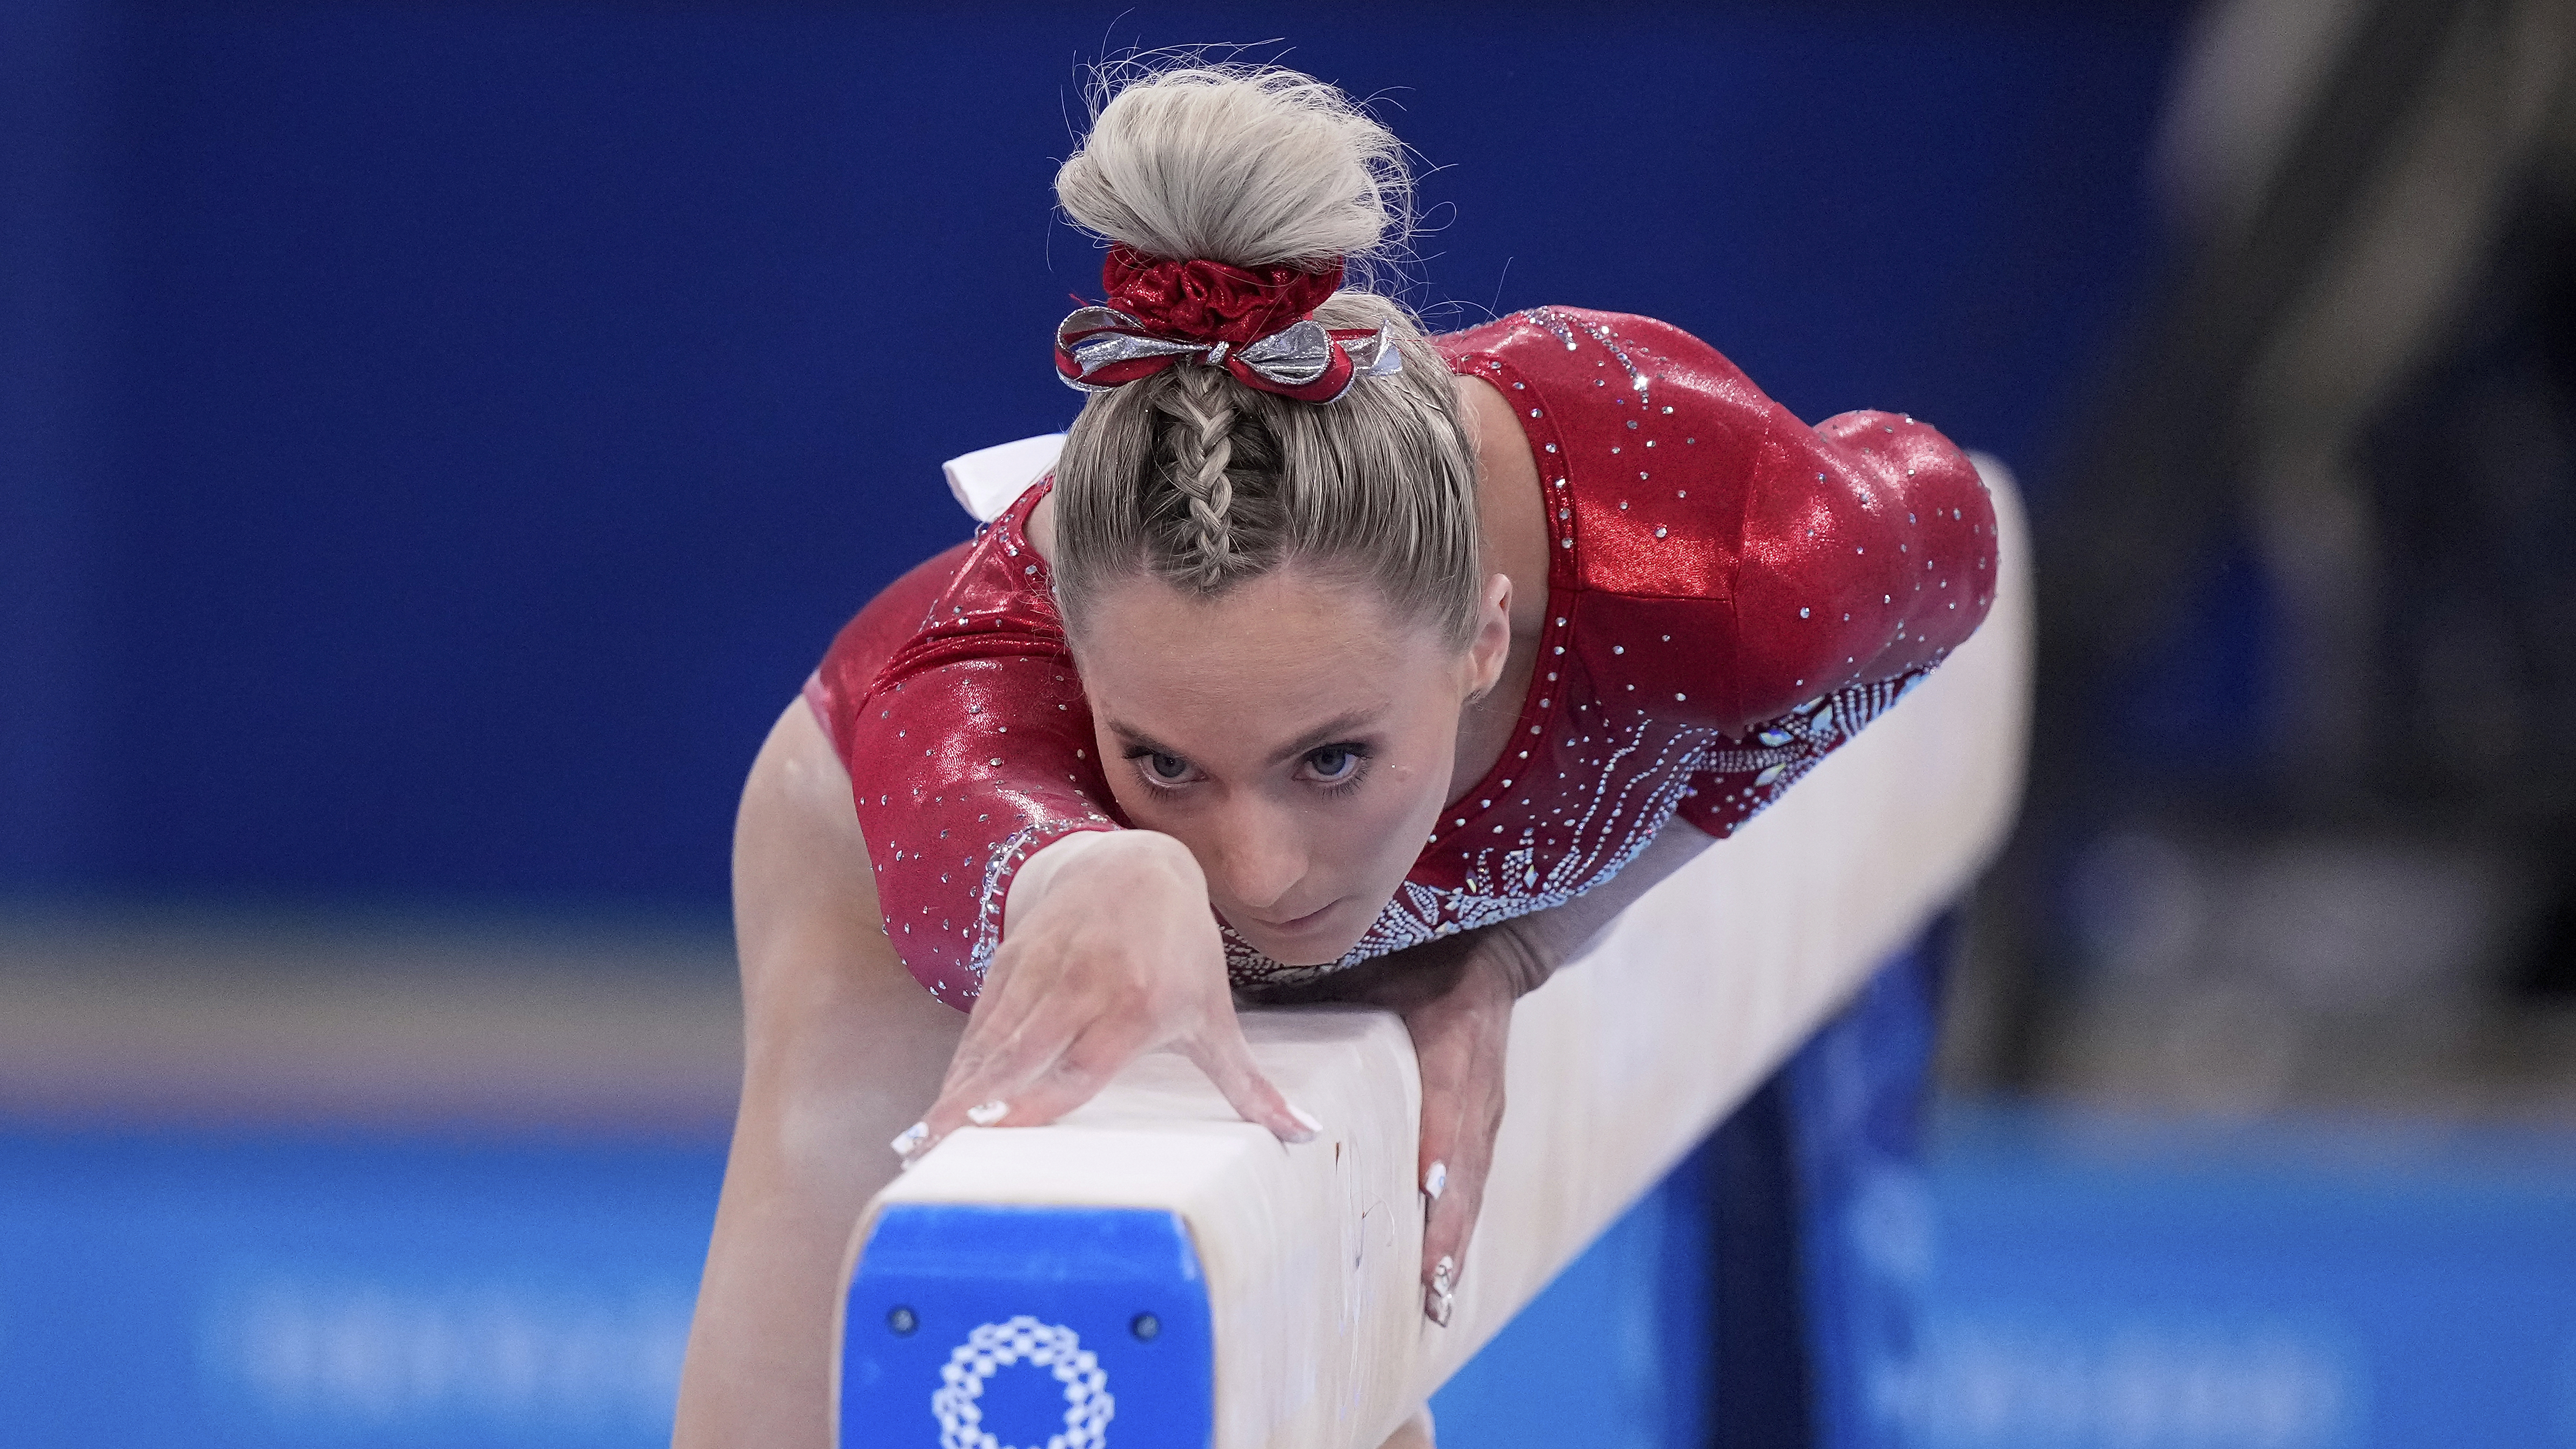 MyKayla Skinner performs on the balance beam at the 2020 Summer Olympics.